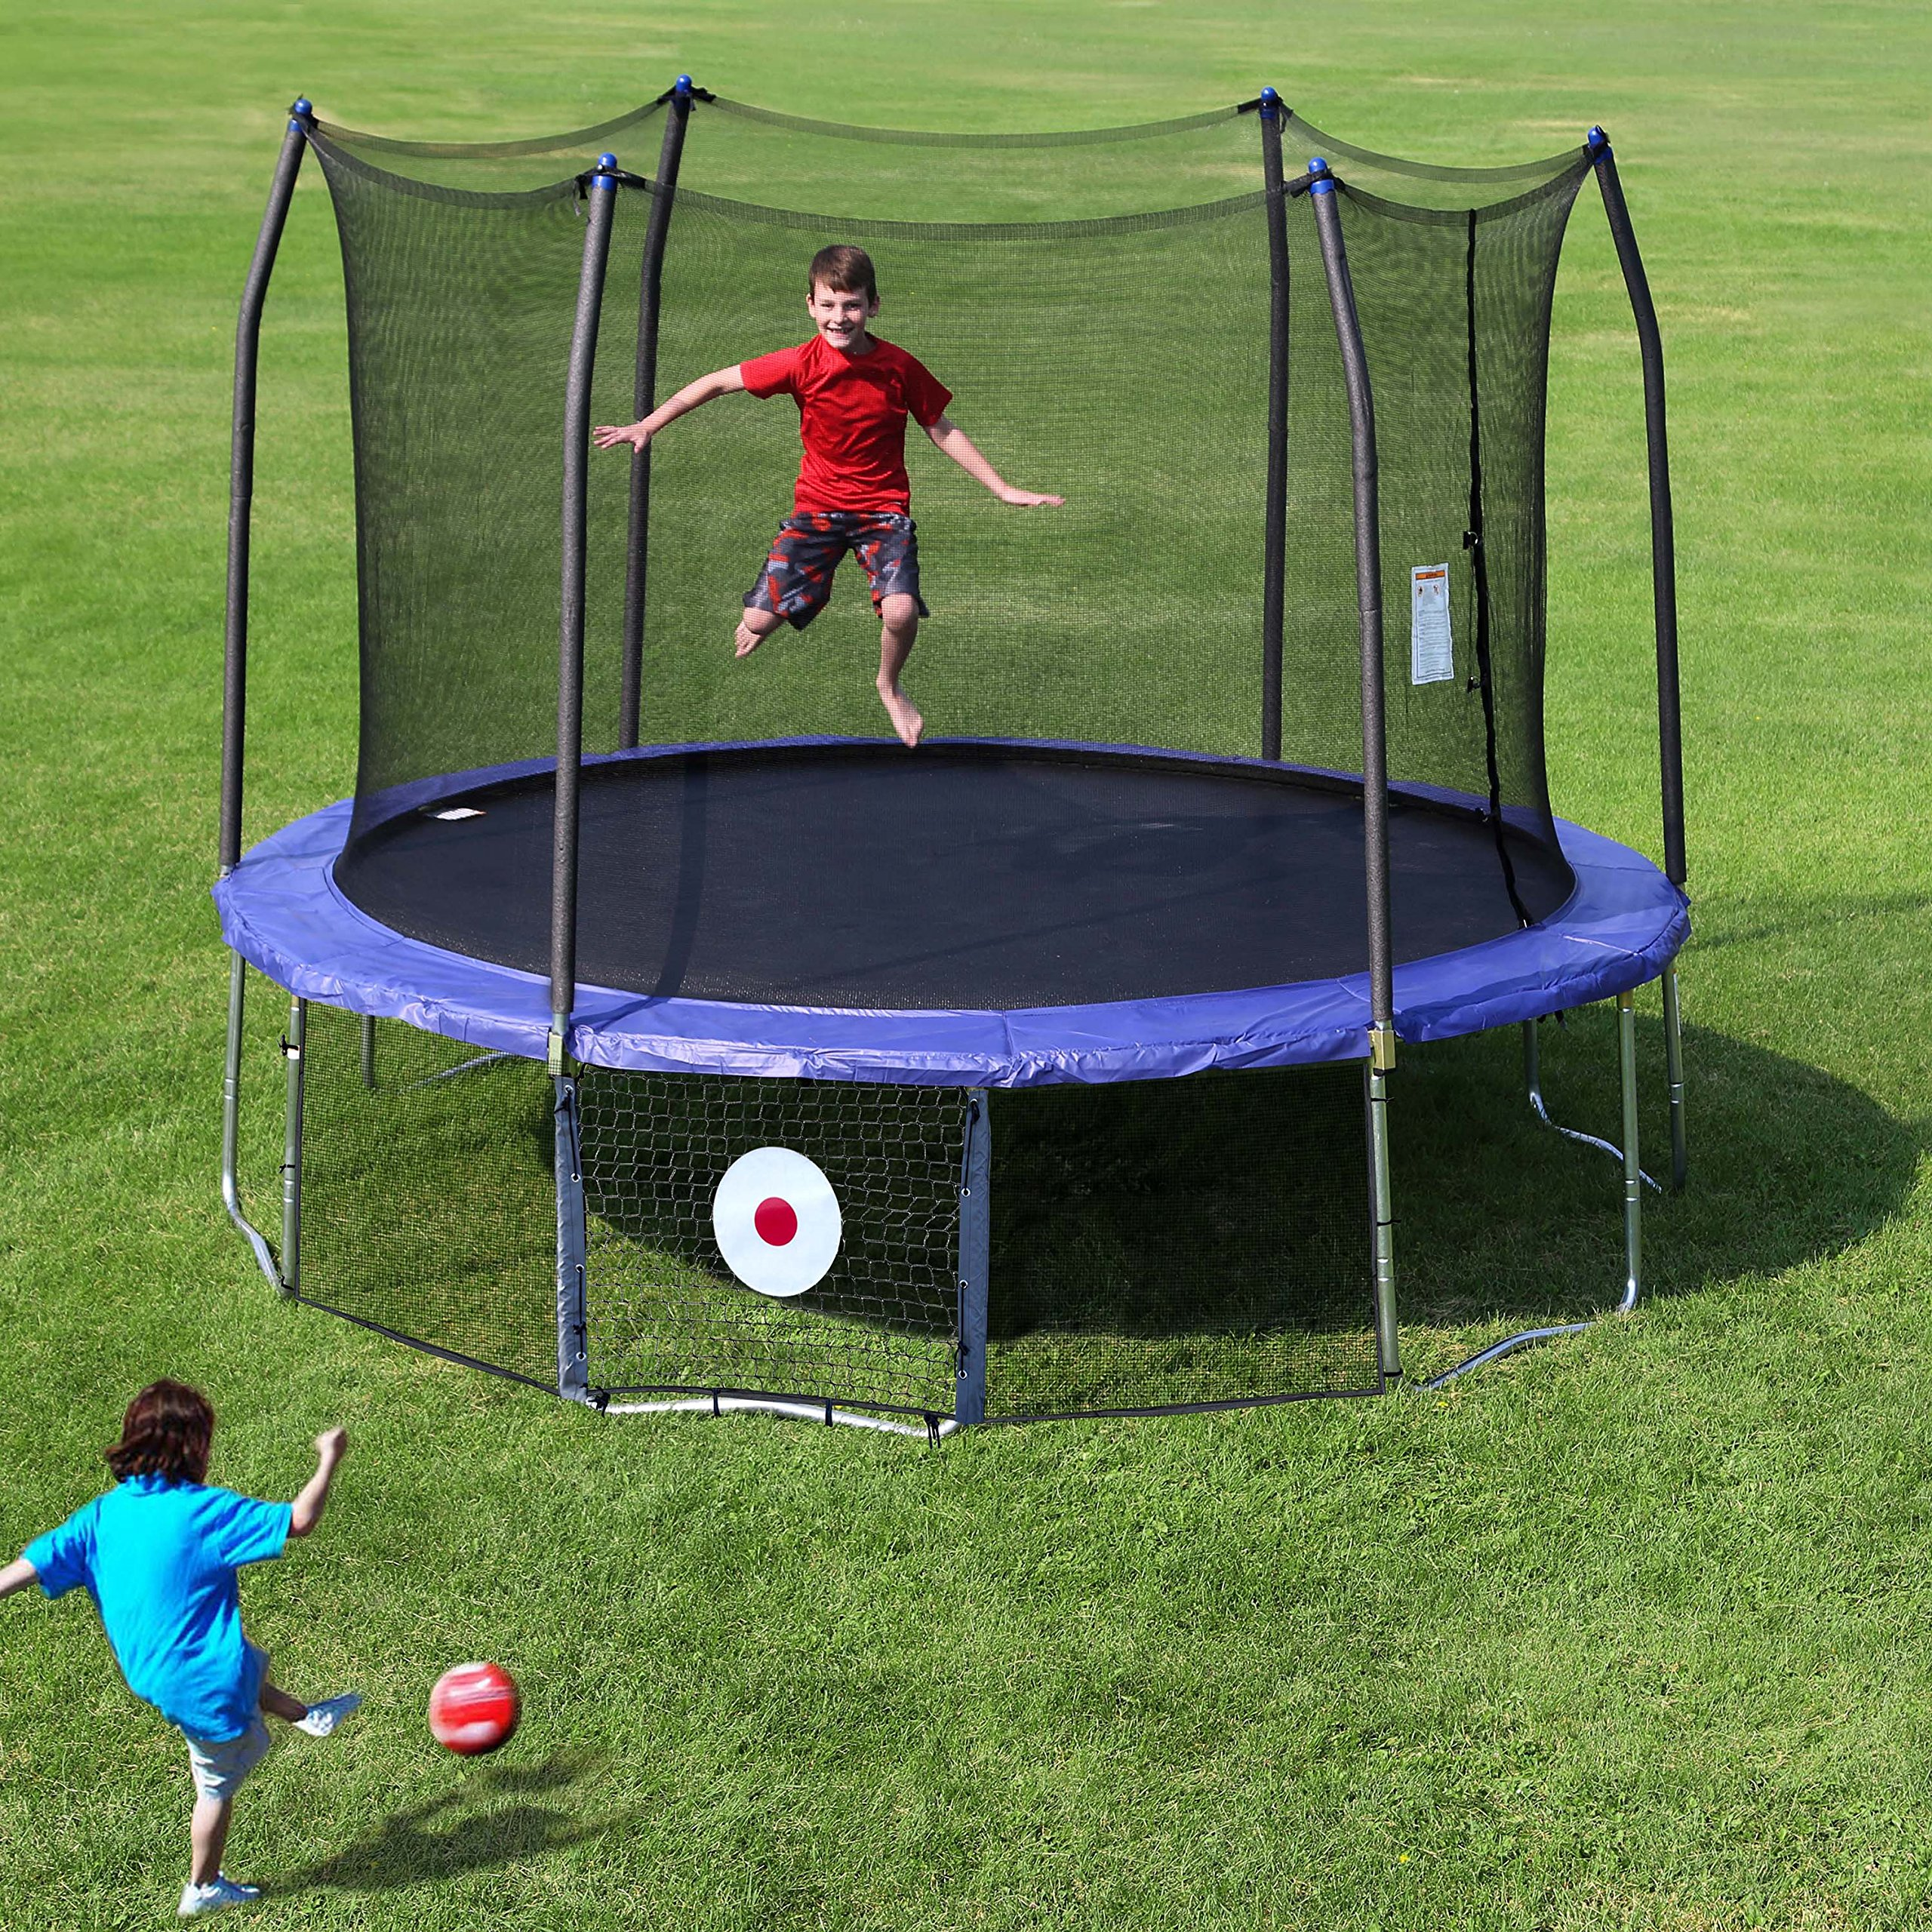 Skywalker Trampolines Kickback Game Accessory by Skywalker Trampolines